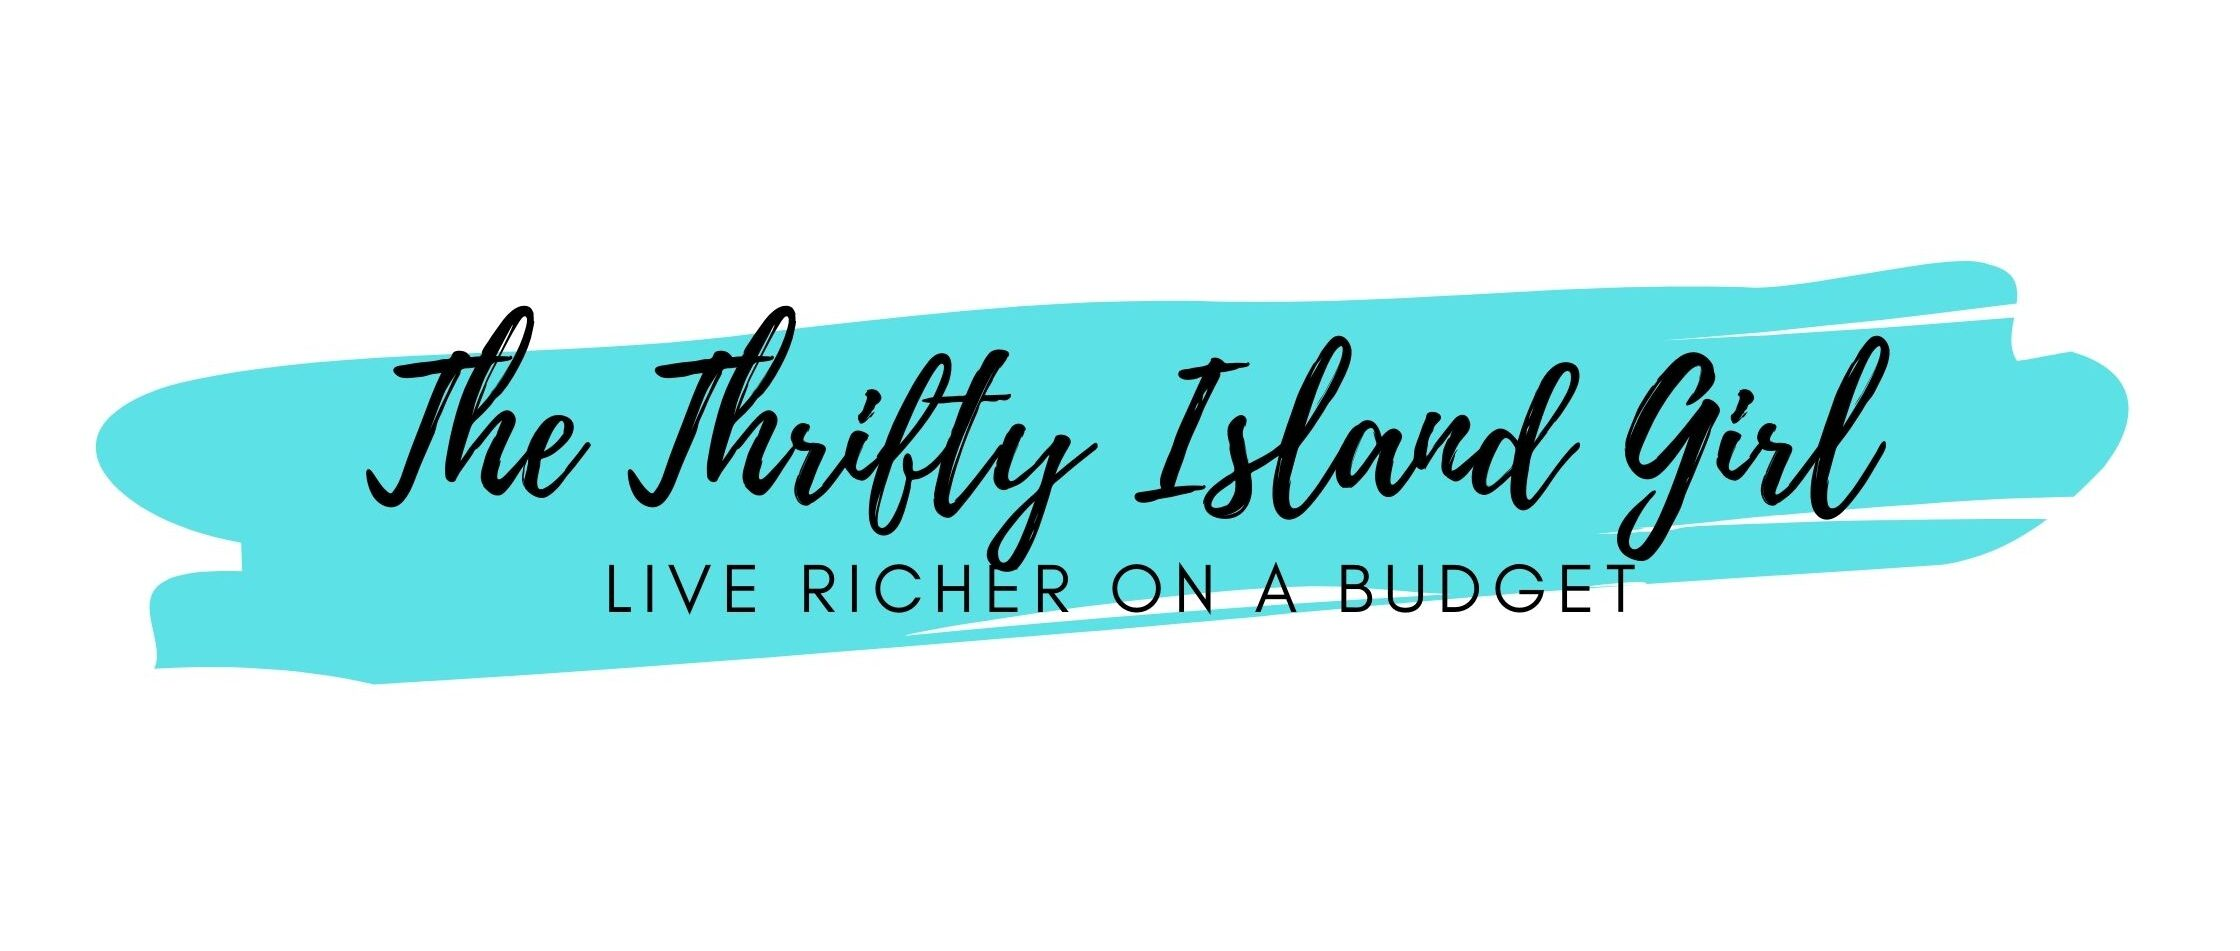 The Thrifty Island Girl